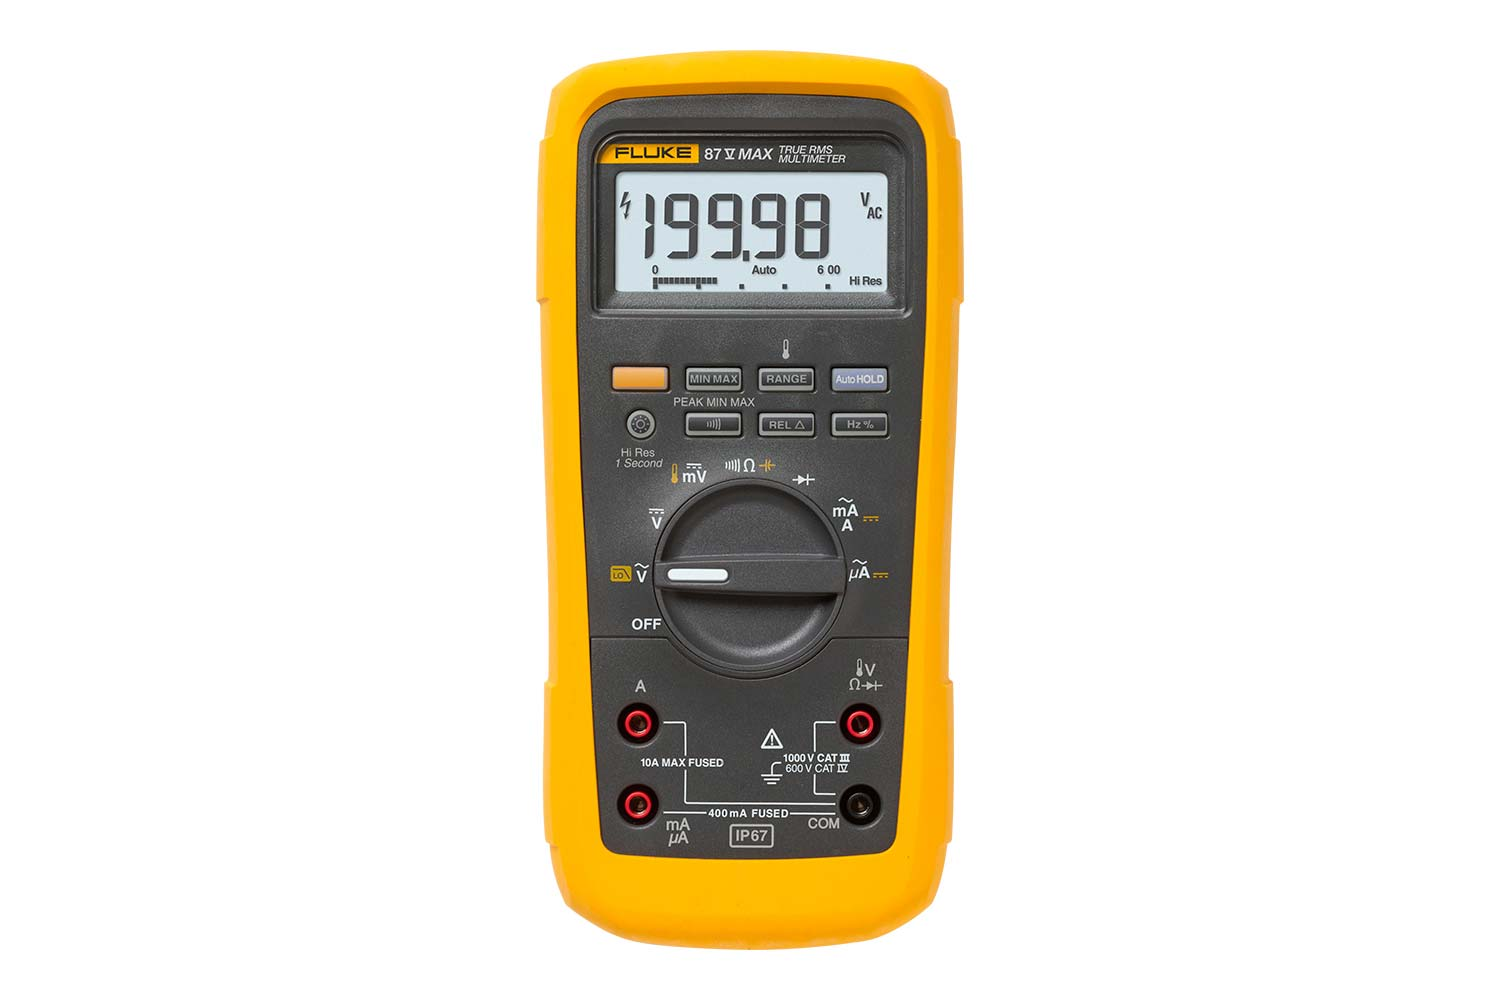 Fluke 87V Max True-RMS digitale multimeter